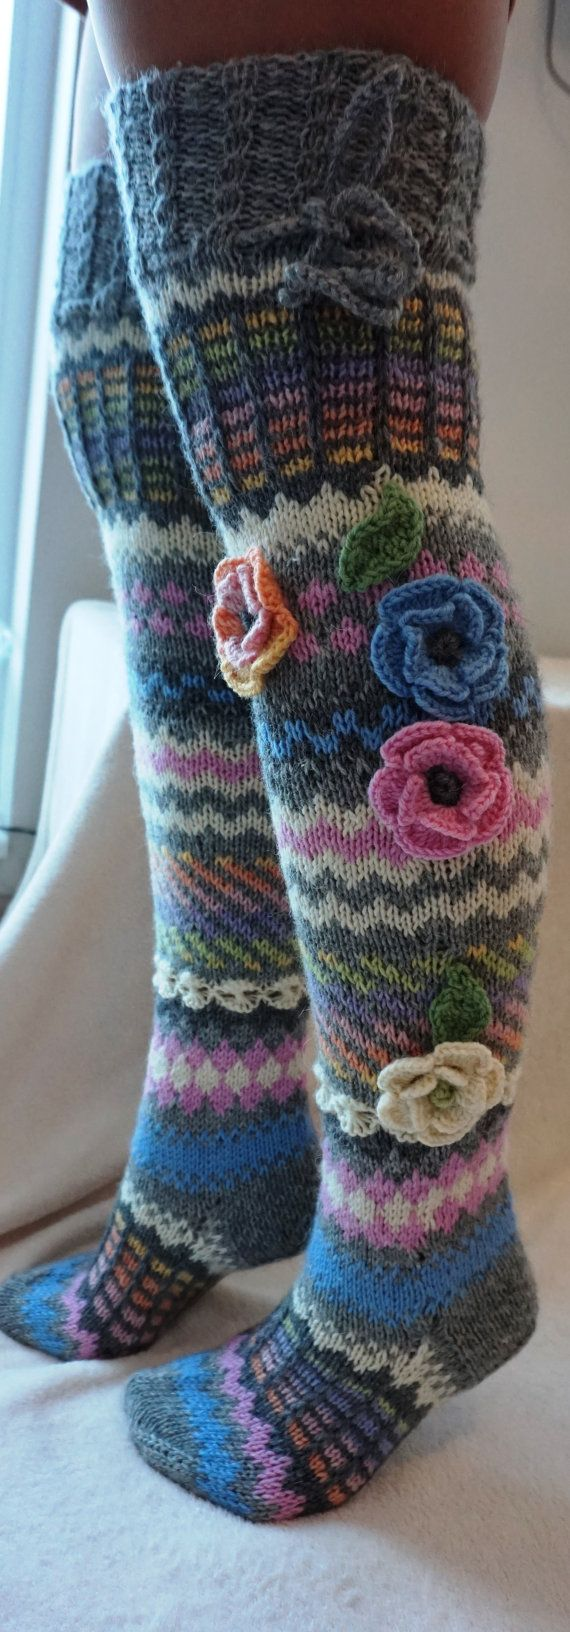 Wool socks, Hand knit over knee socks, handknitted socks, flower knee socks, Flower socks, rainbow socks, woman leg warmers, Hand knit sock